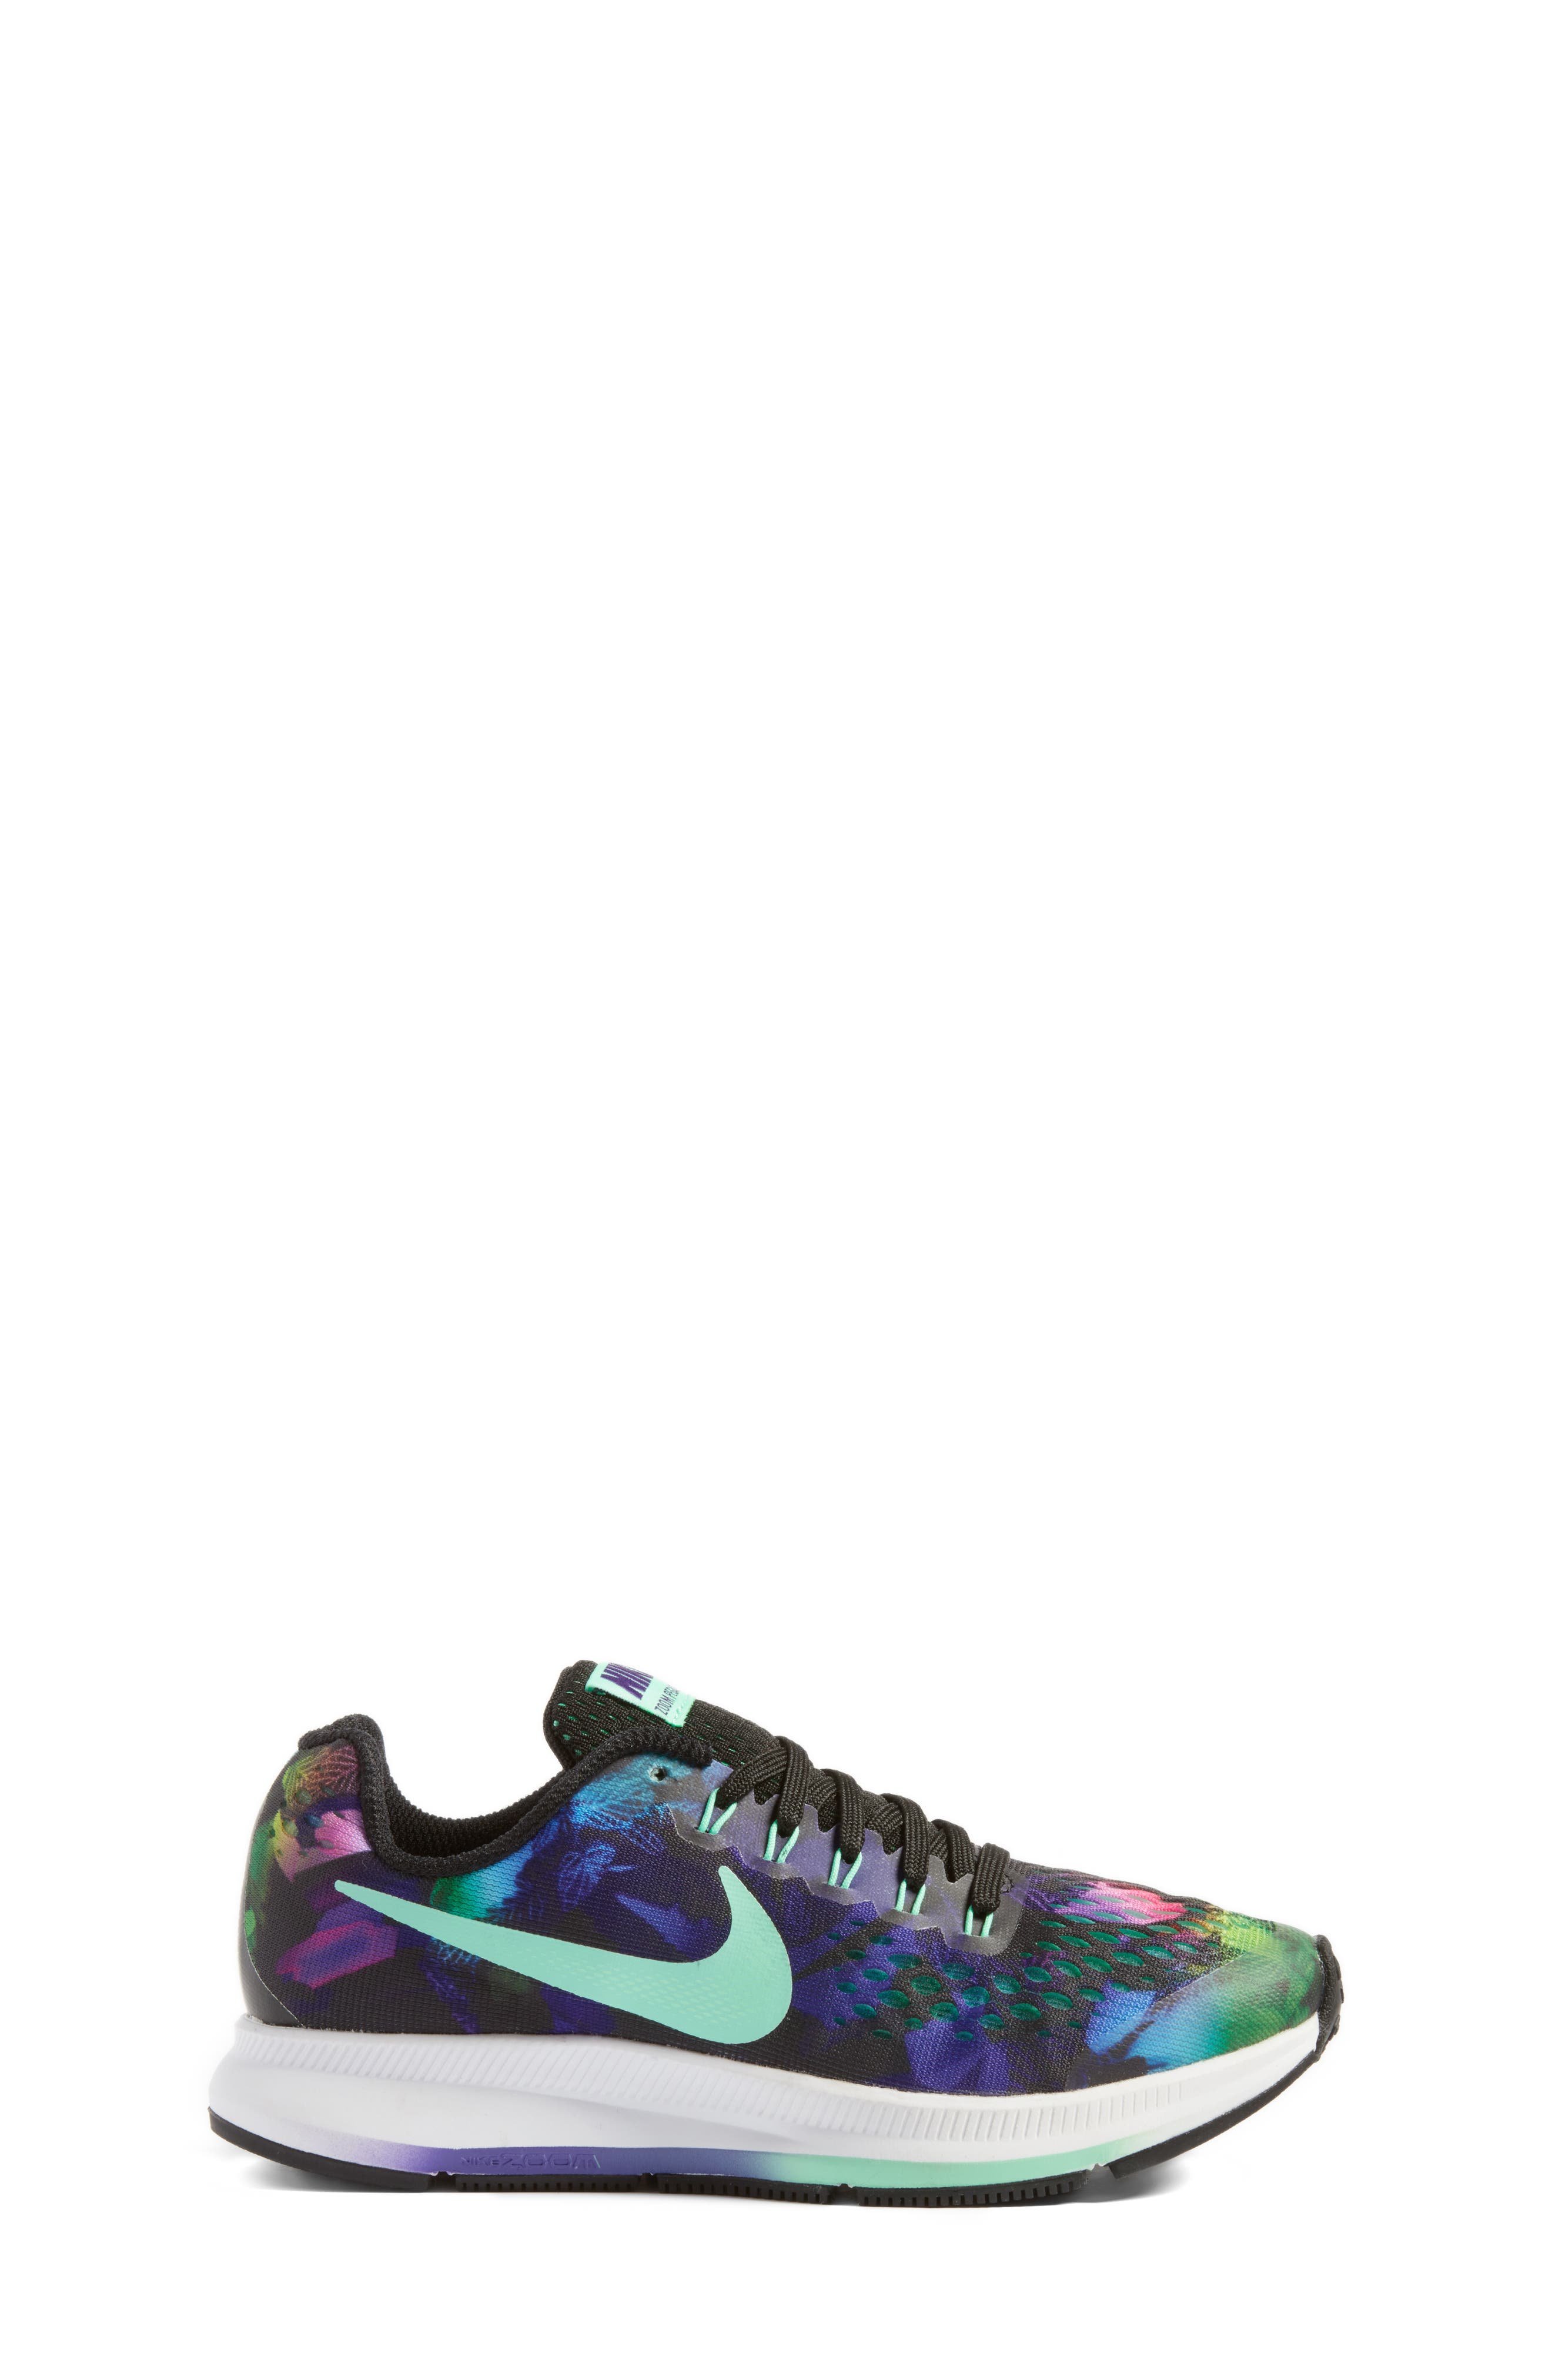 Zoom Pegasus 34 Print Sneaker,                             Alternate thumbnail 3, color,                             001